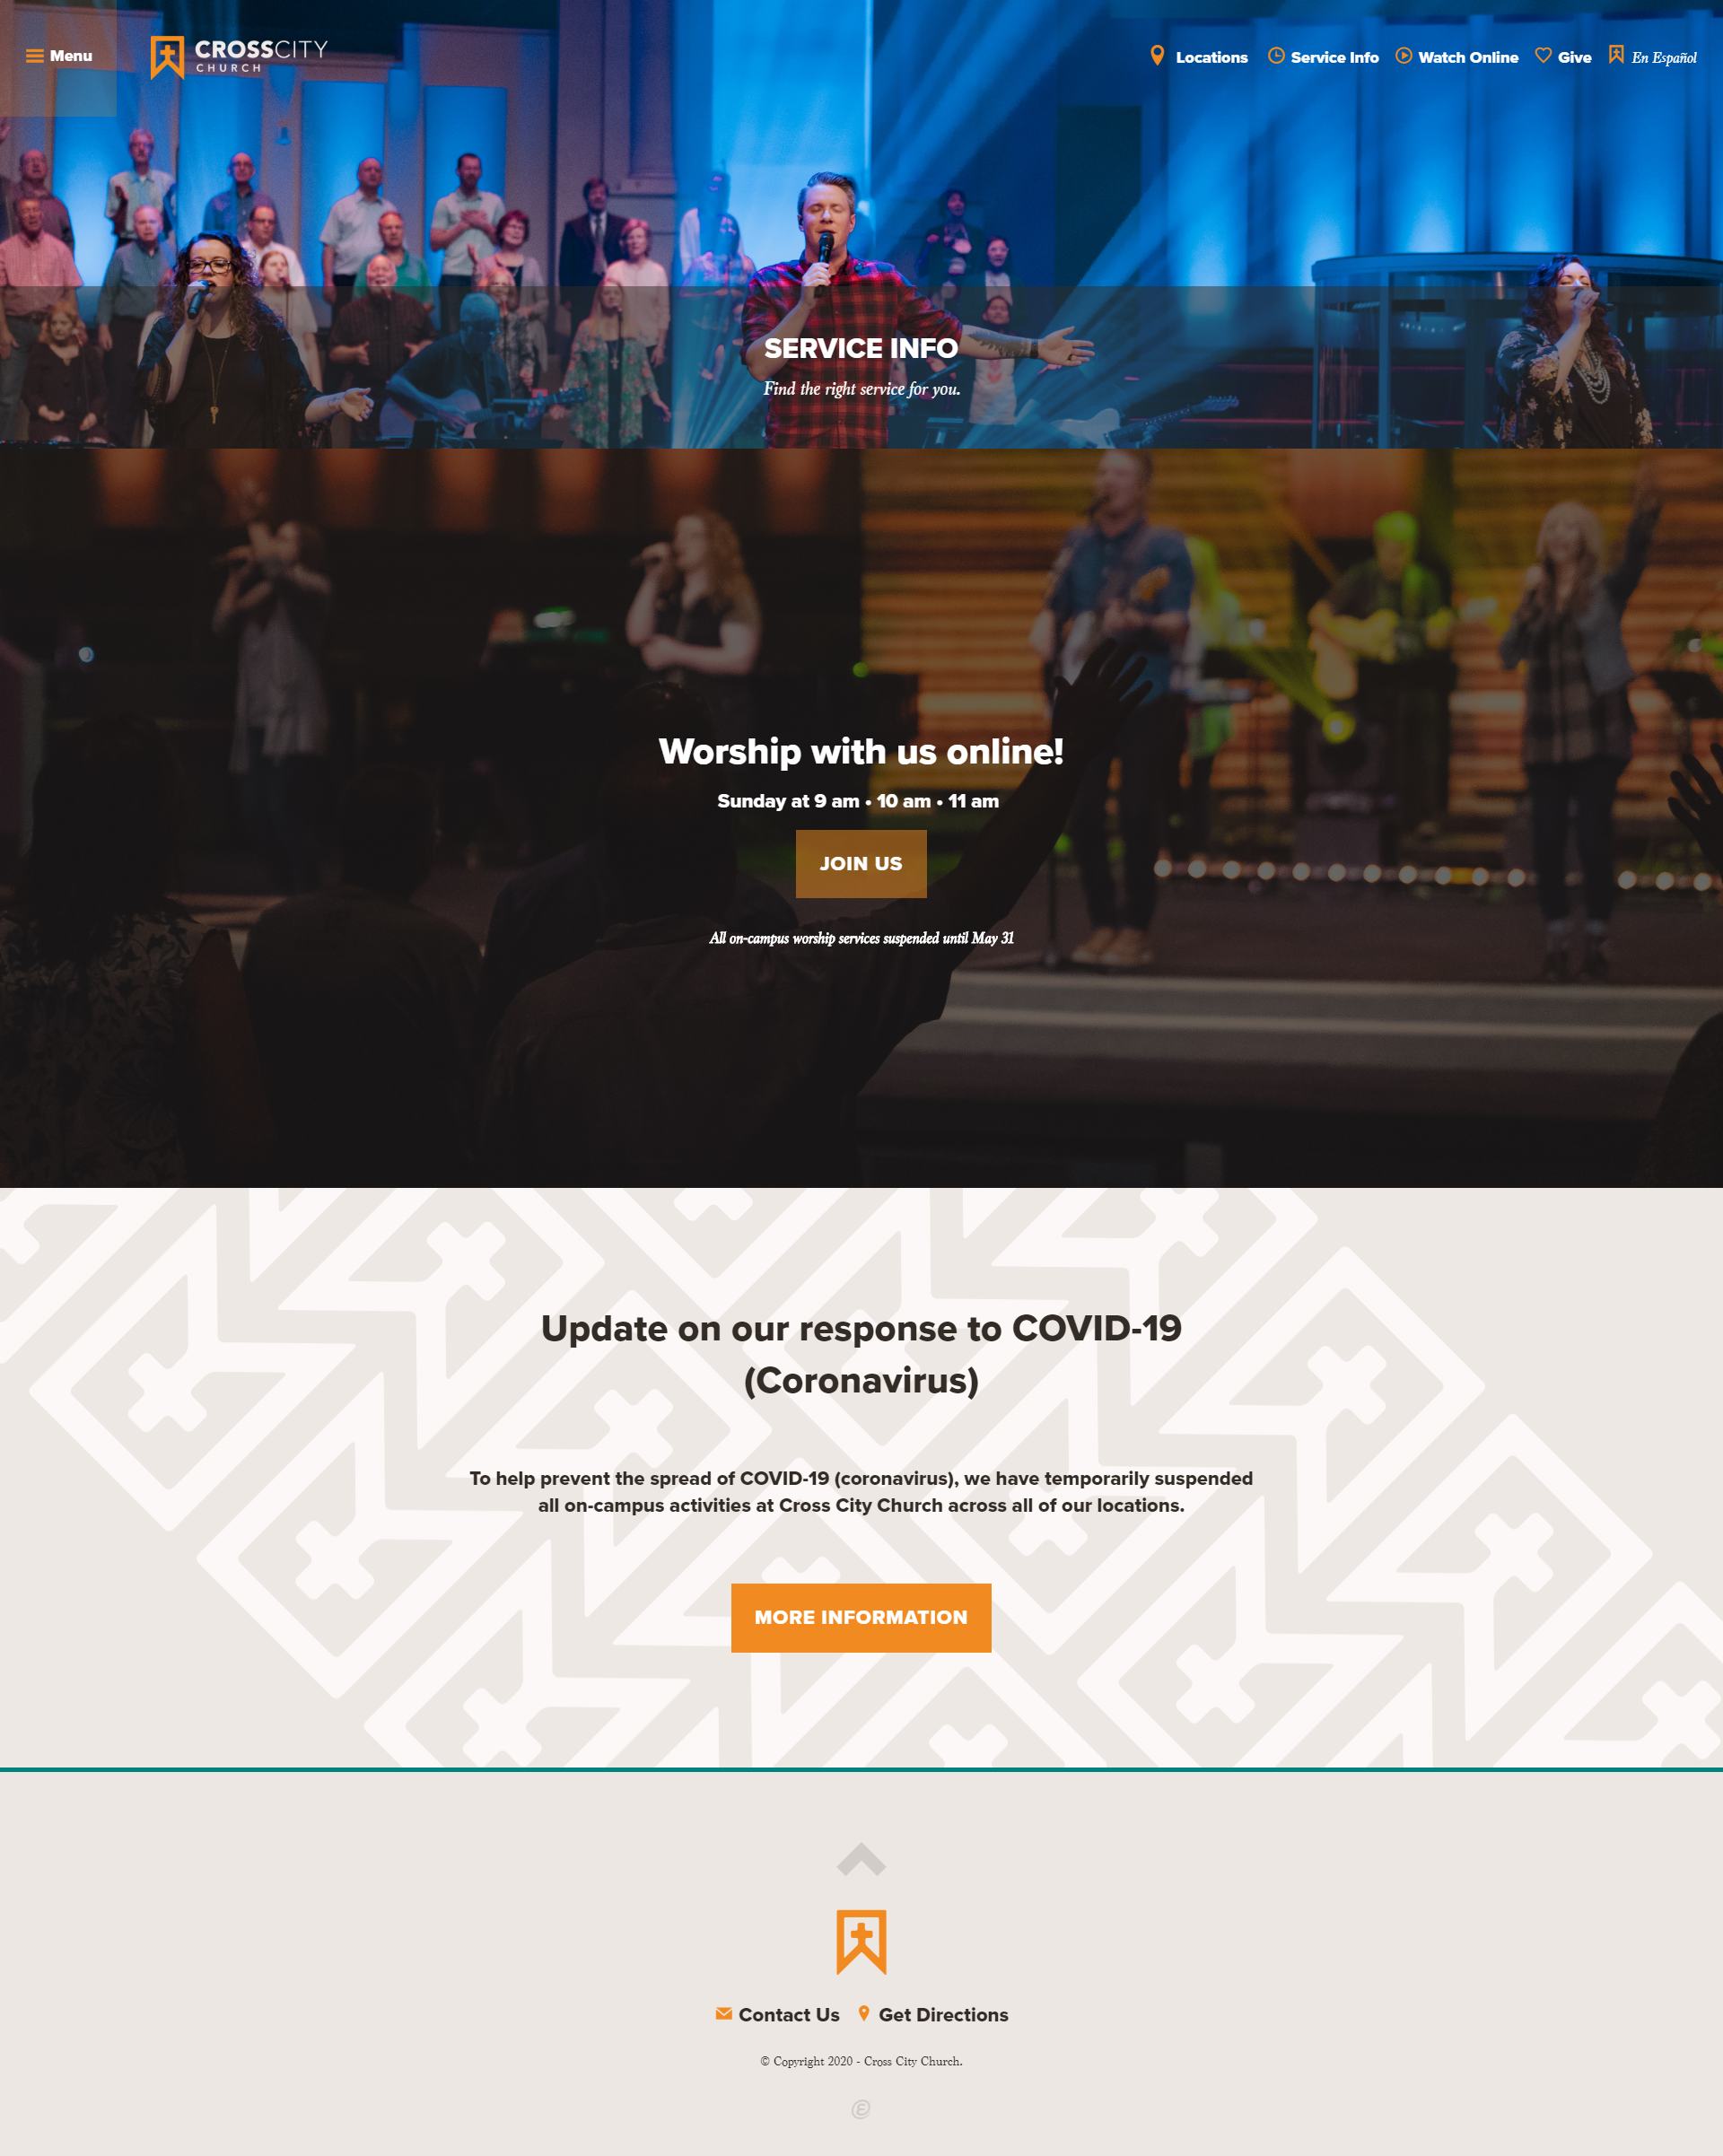 Cross City Church Services Page